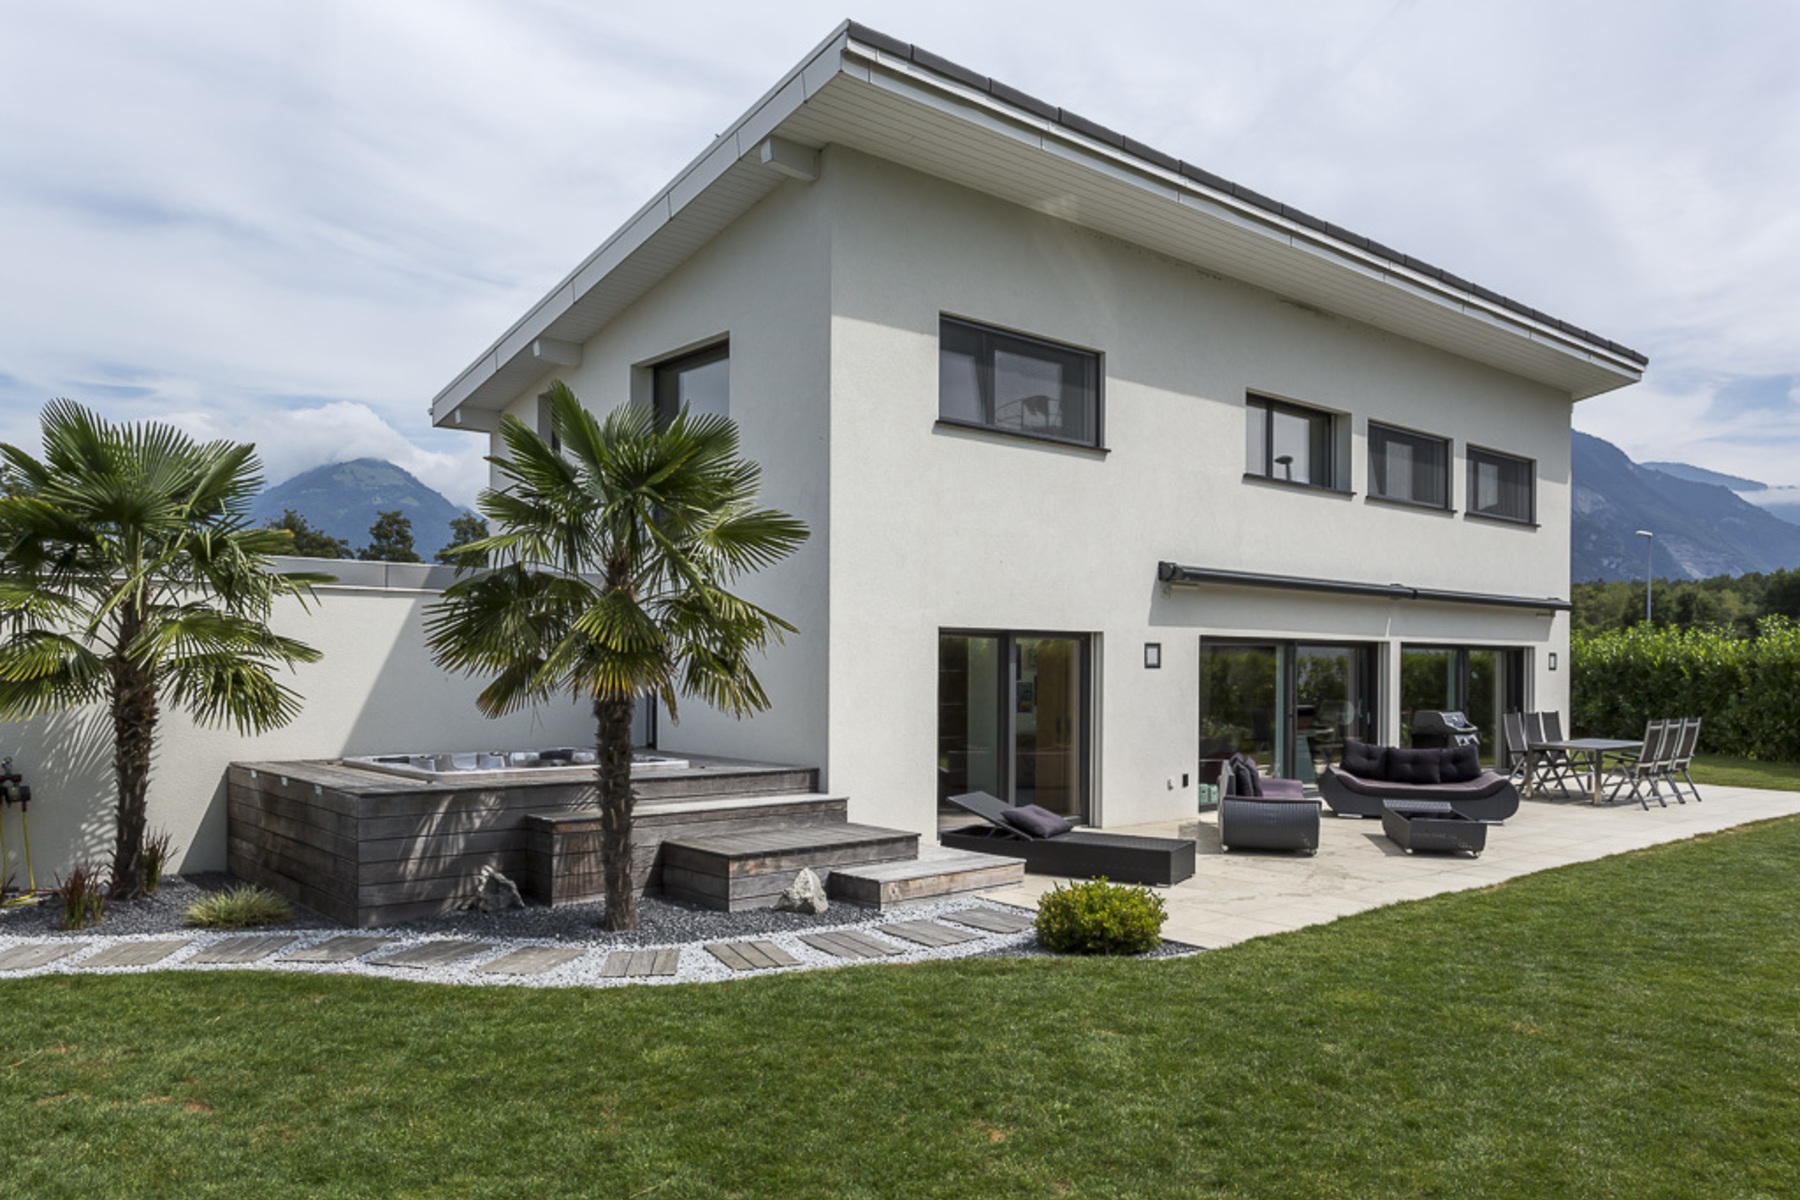 Single Family Home for Sale at Magnificent 6.5 room contemporary villa Residential neighbourhood Bouveret Bouveret, Vaud, 1897 Switzerland